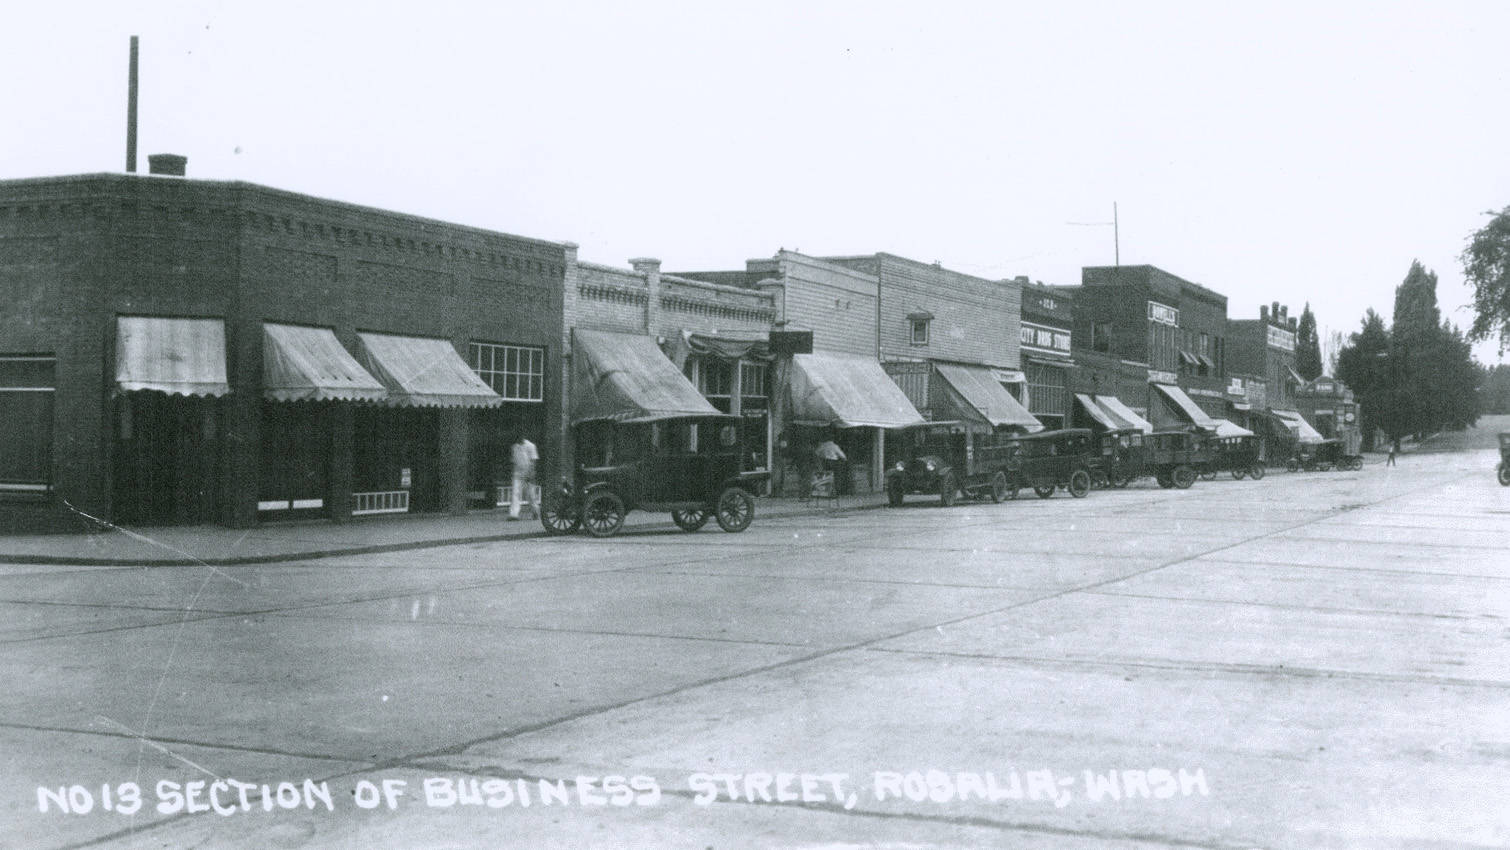 Business_district_in_Rosalia_Washington_circa_19201929